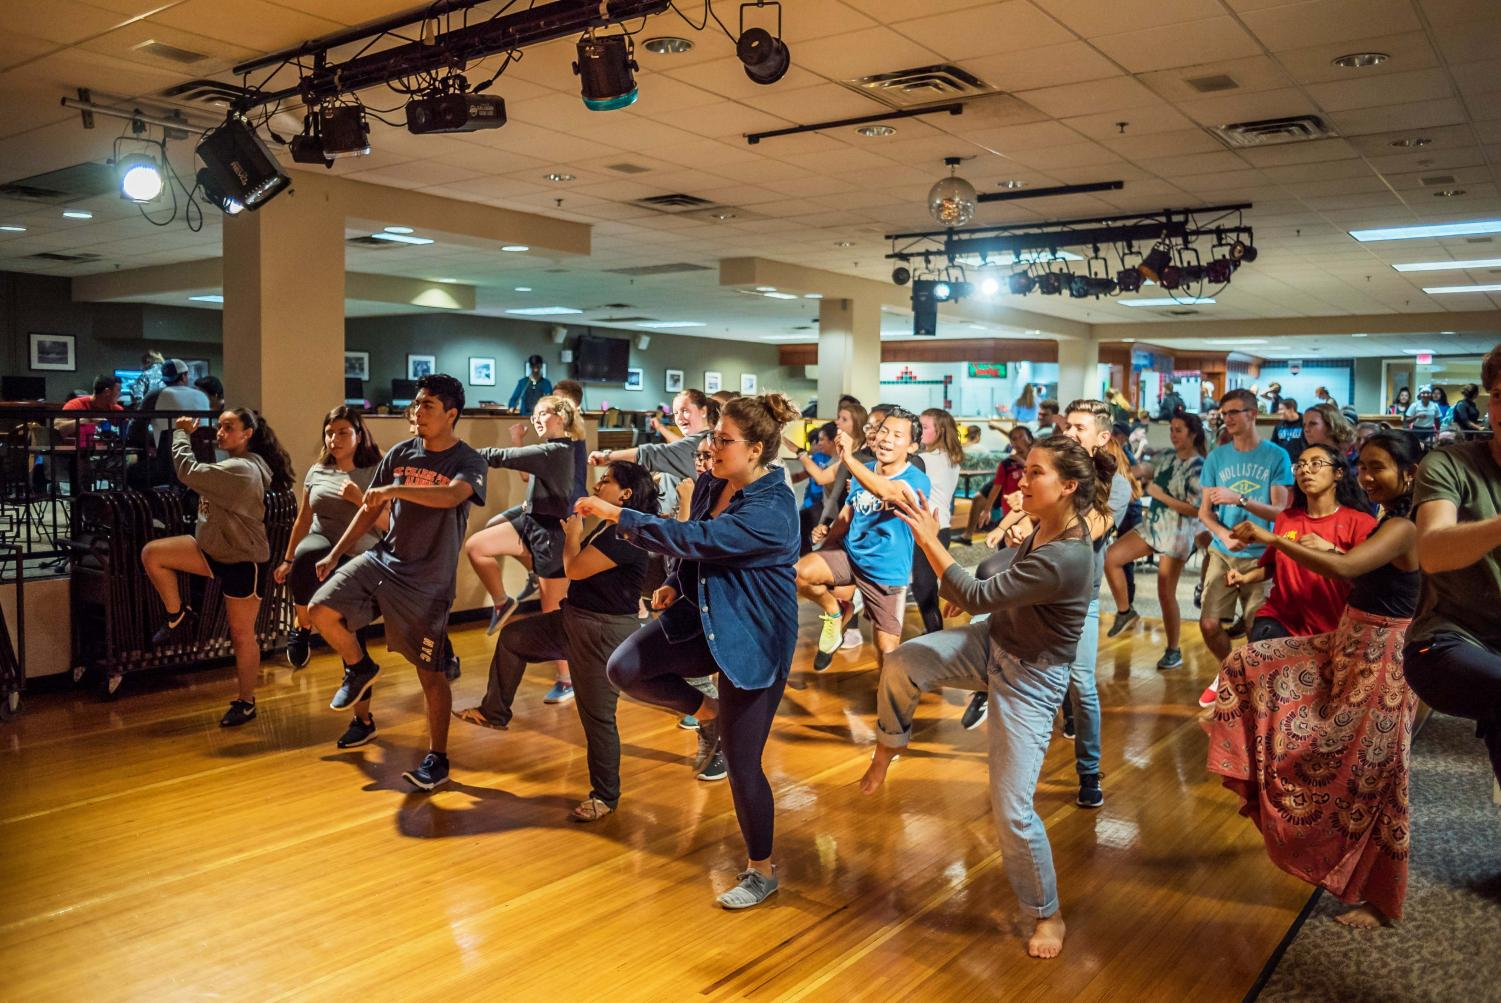 Students participate in zumba class in Marty's